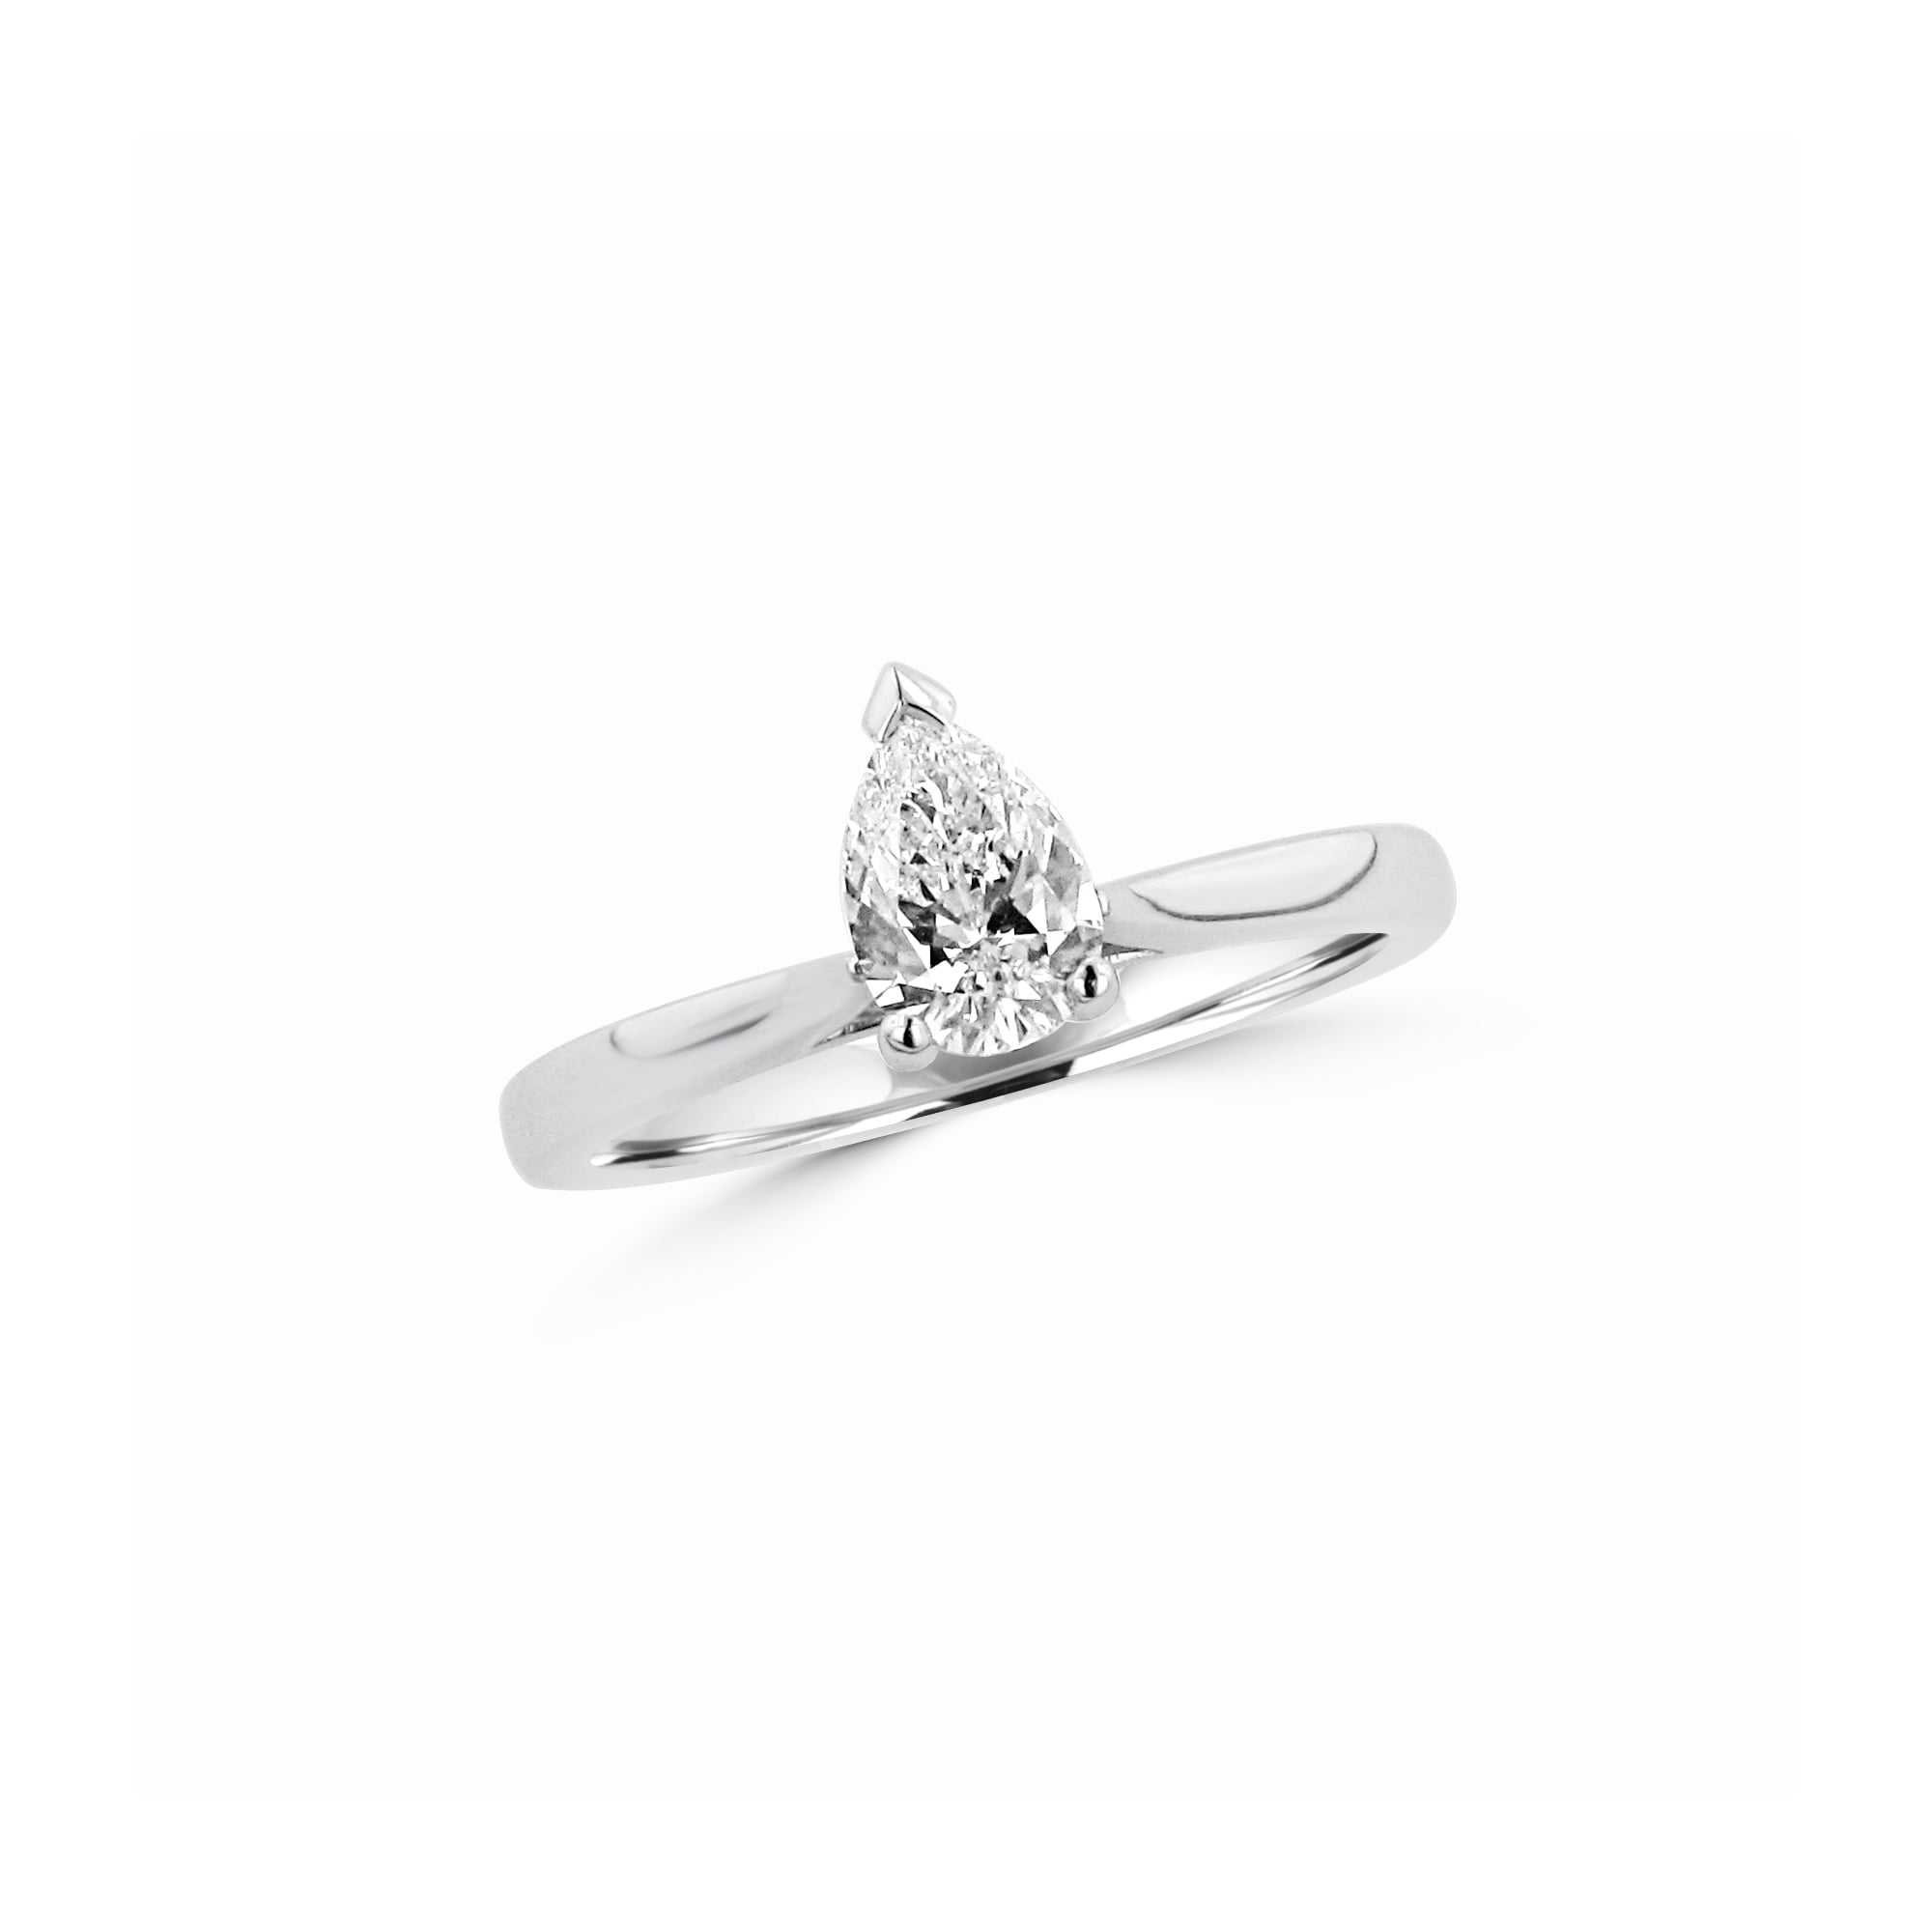 and shape flawless a side graff d white featuring ct ring high collections stones heart diamond jewellery with pear